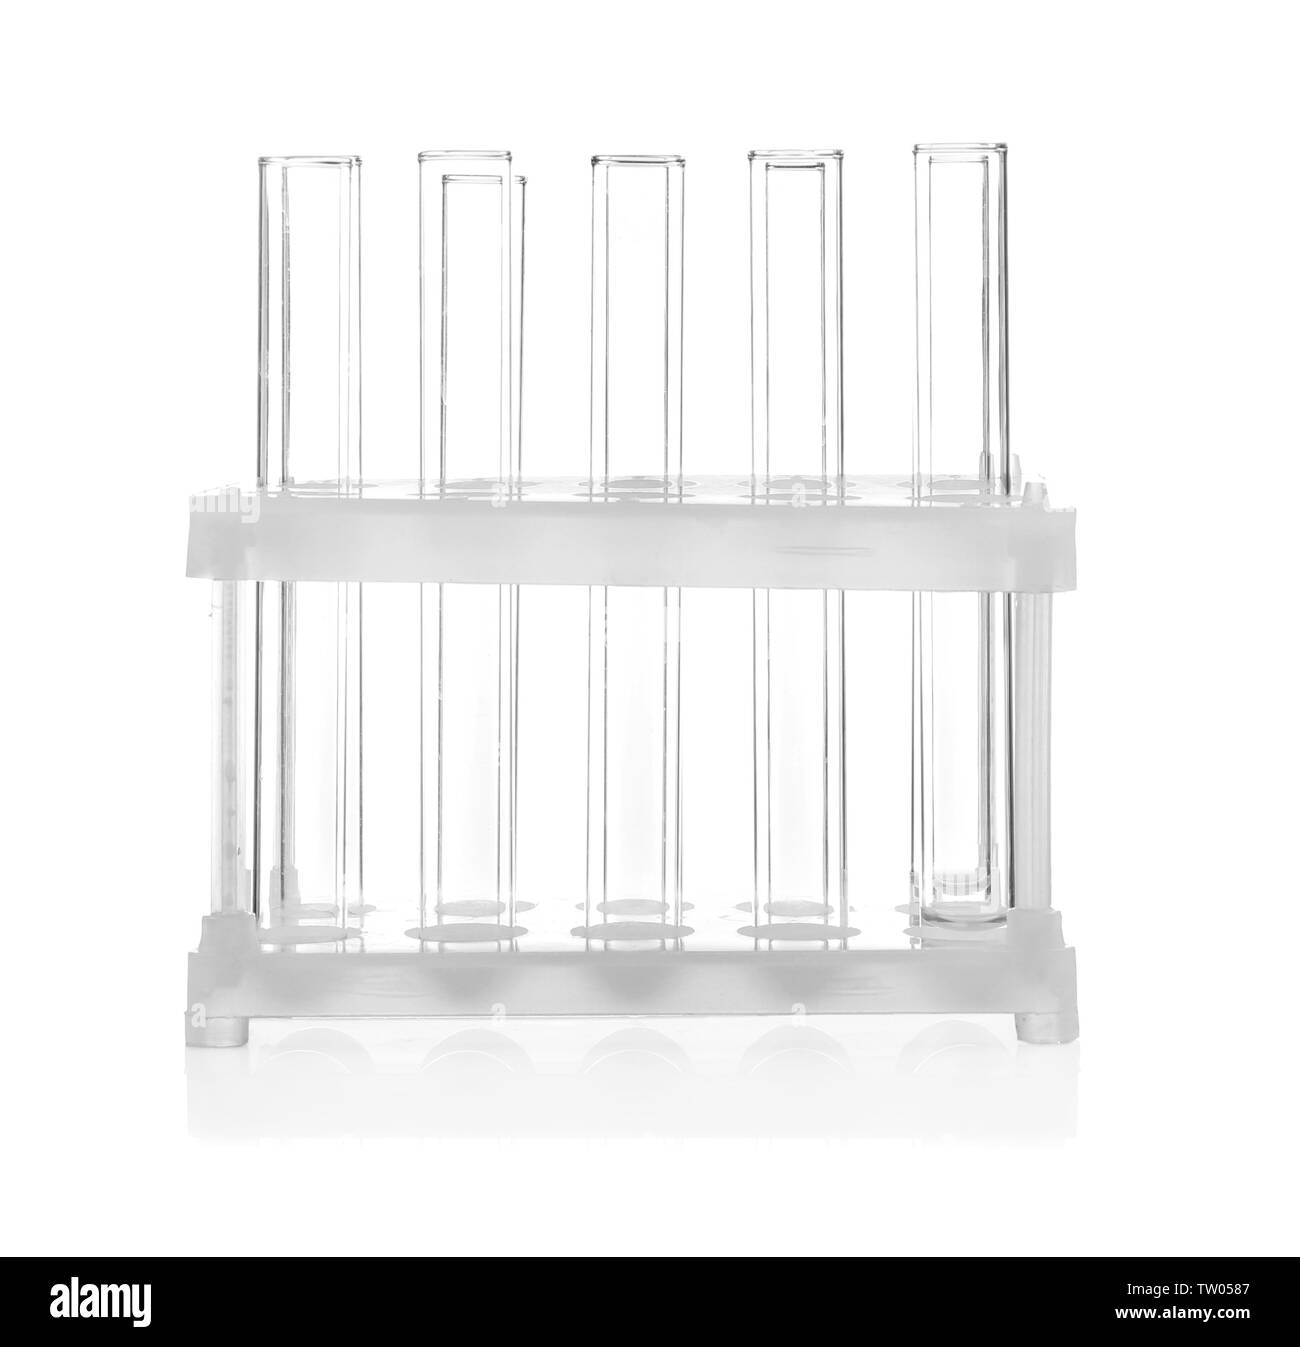 Stand with test tubes isolated on white - Stock Image